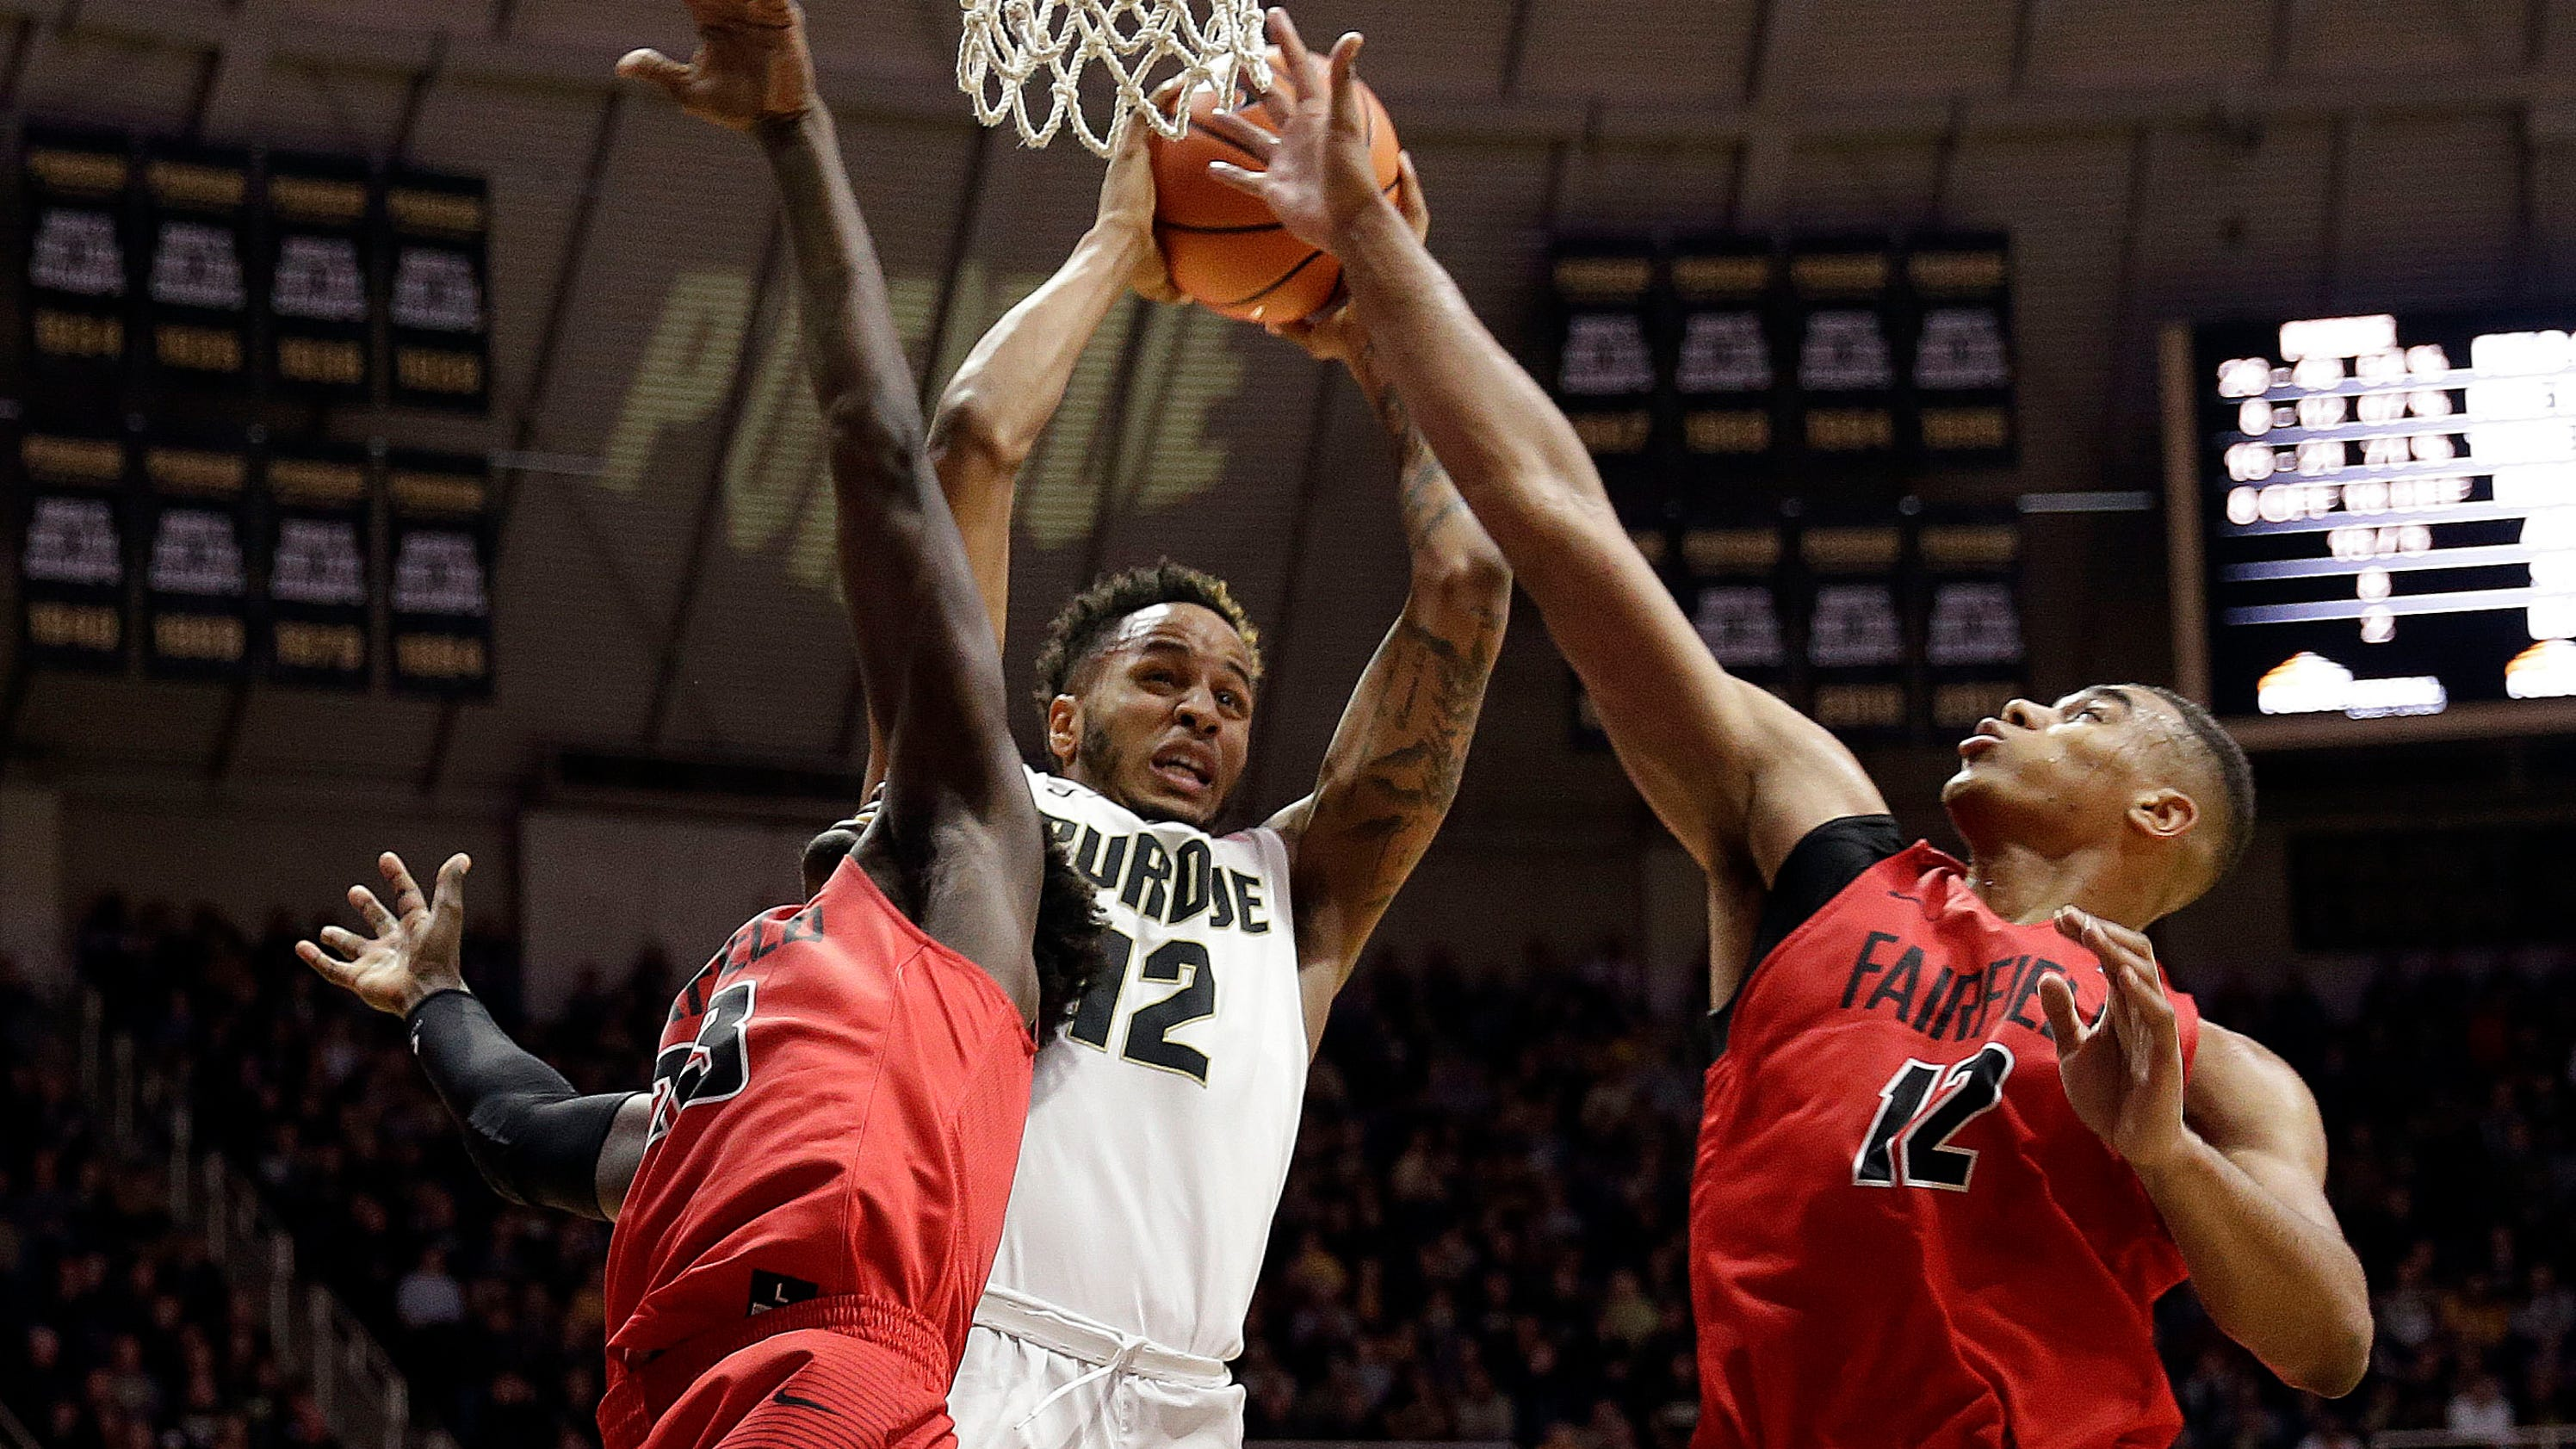 Edwards' basketball background helps Purdue with versatility